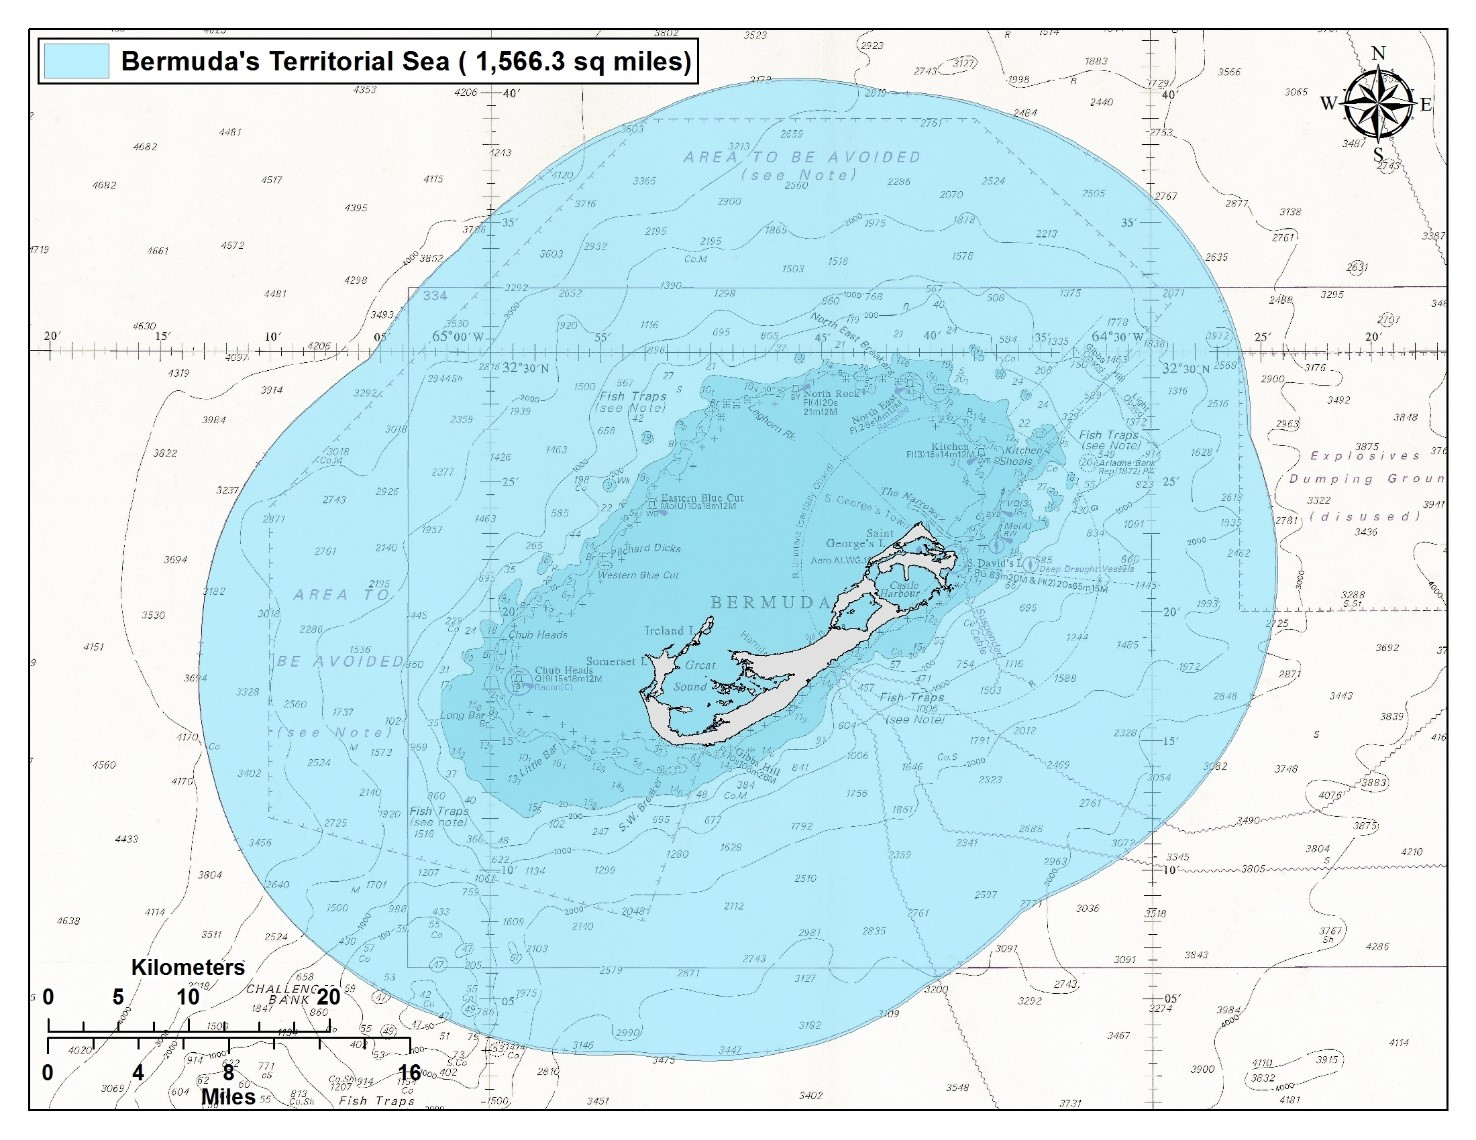 bermuda territorial waters